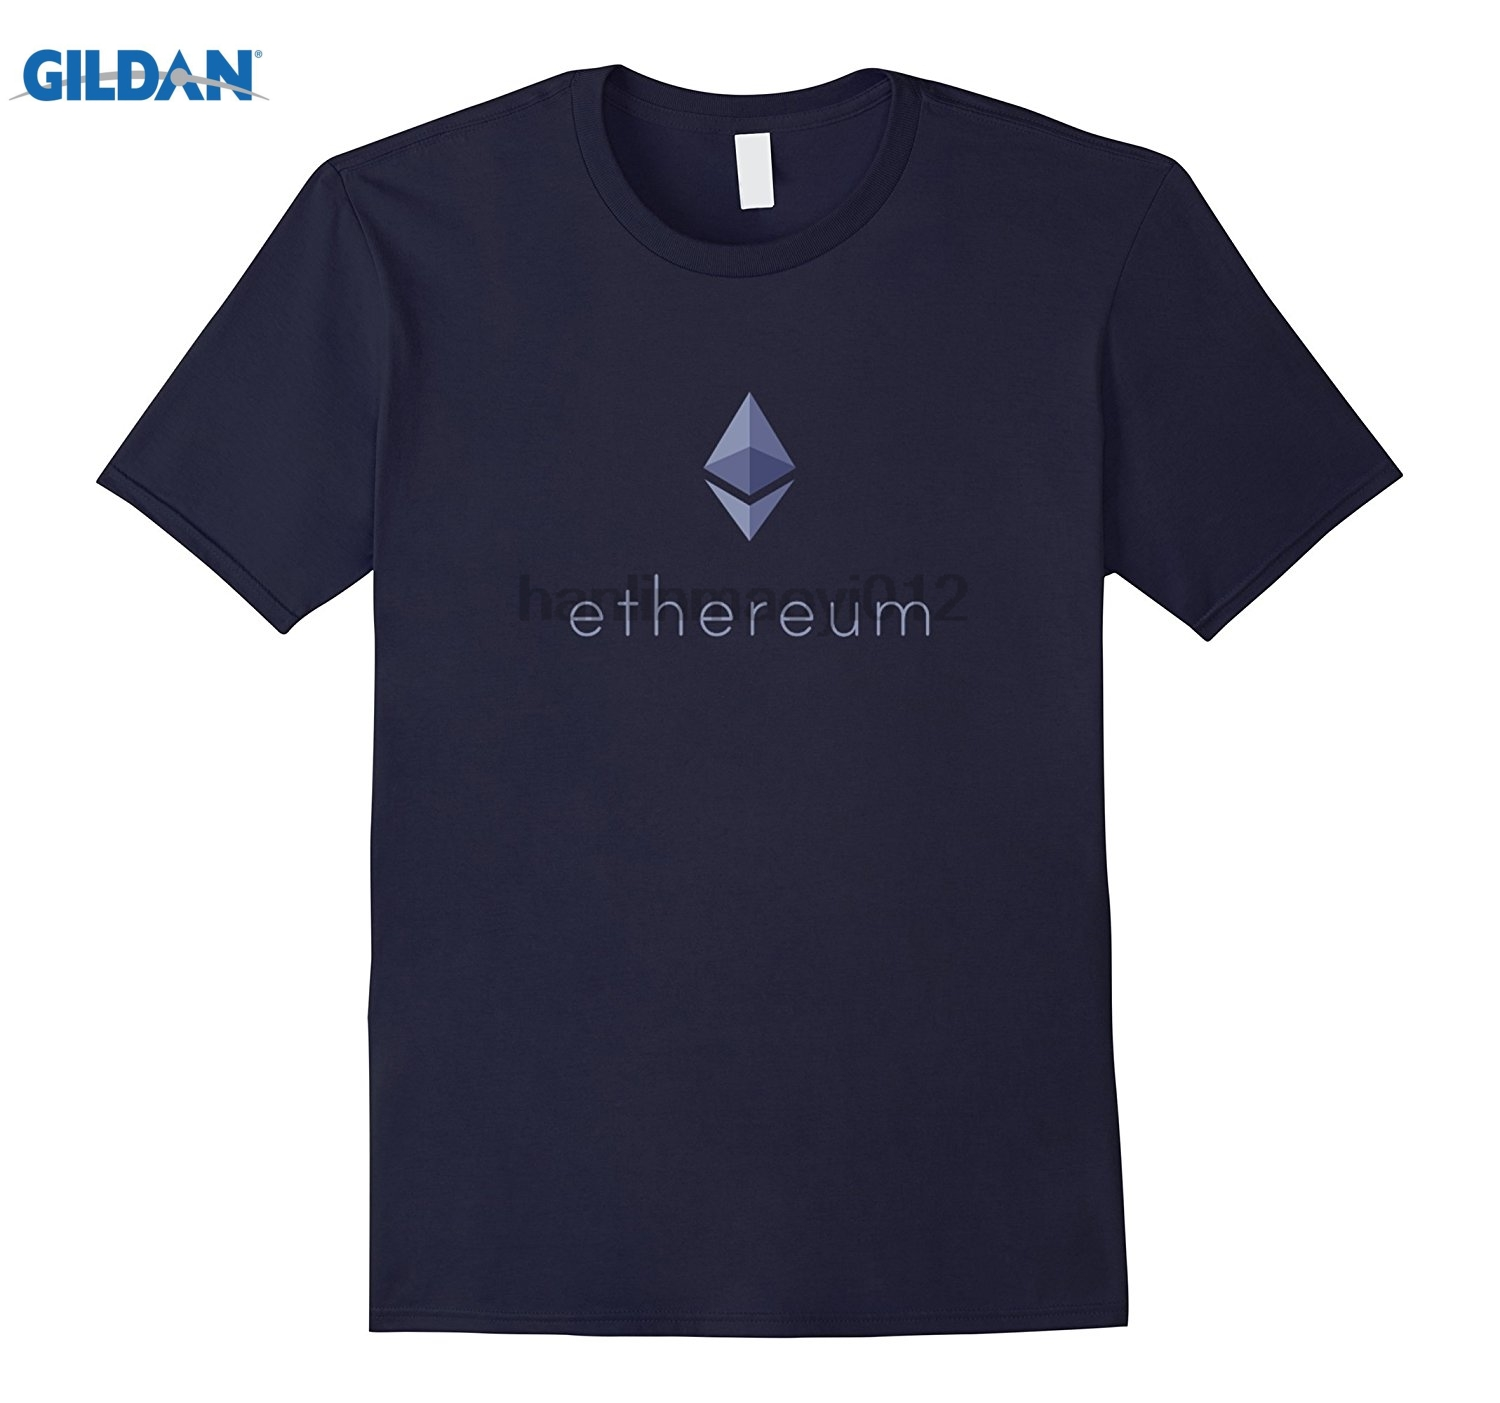 GILDAN Mens Ethereum Spread the Ether Love - Bitcoin Blockchain glasses Womens T-shirt